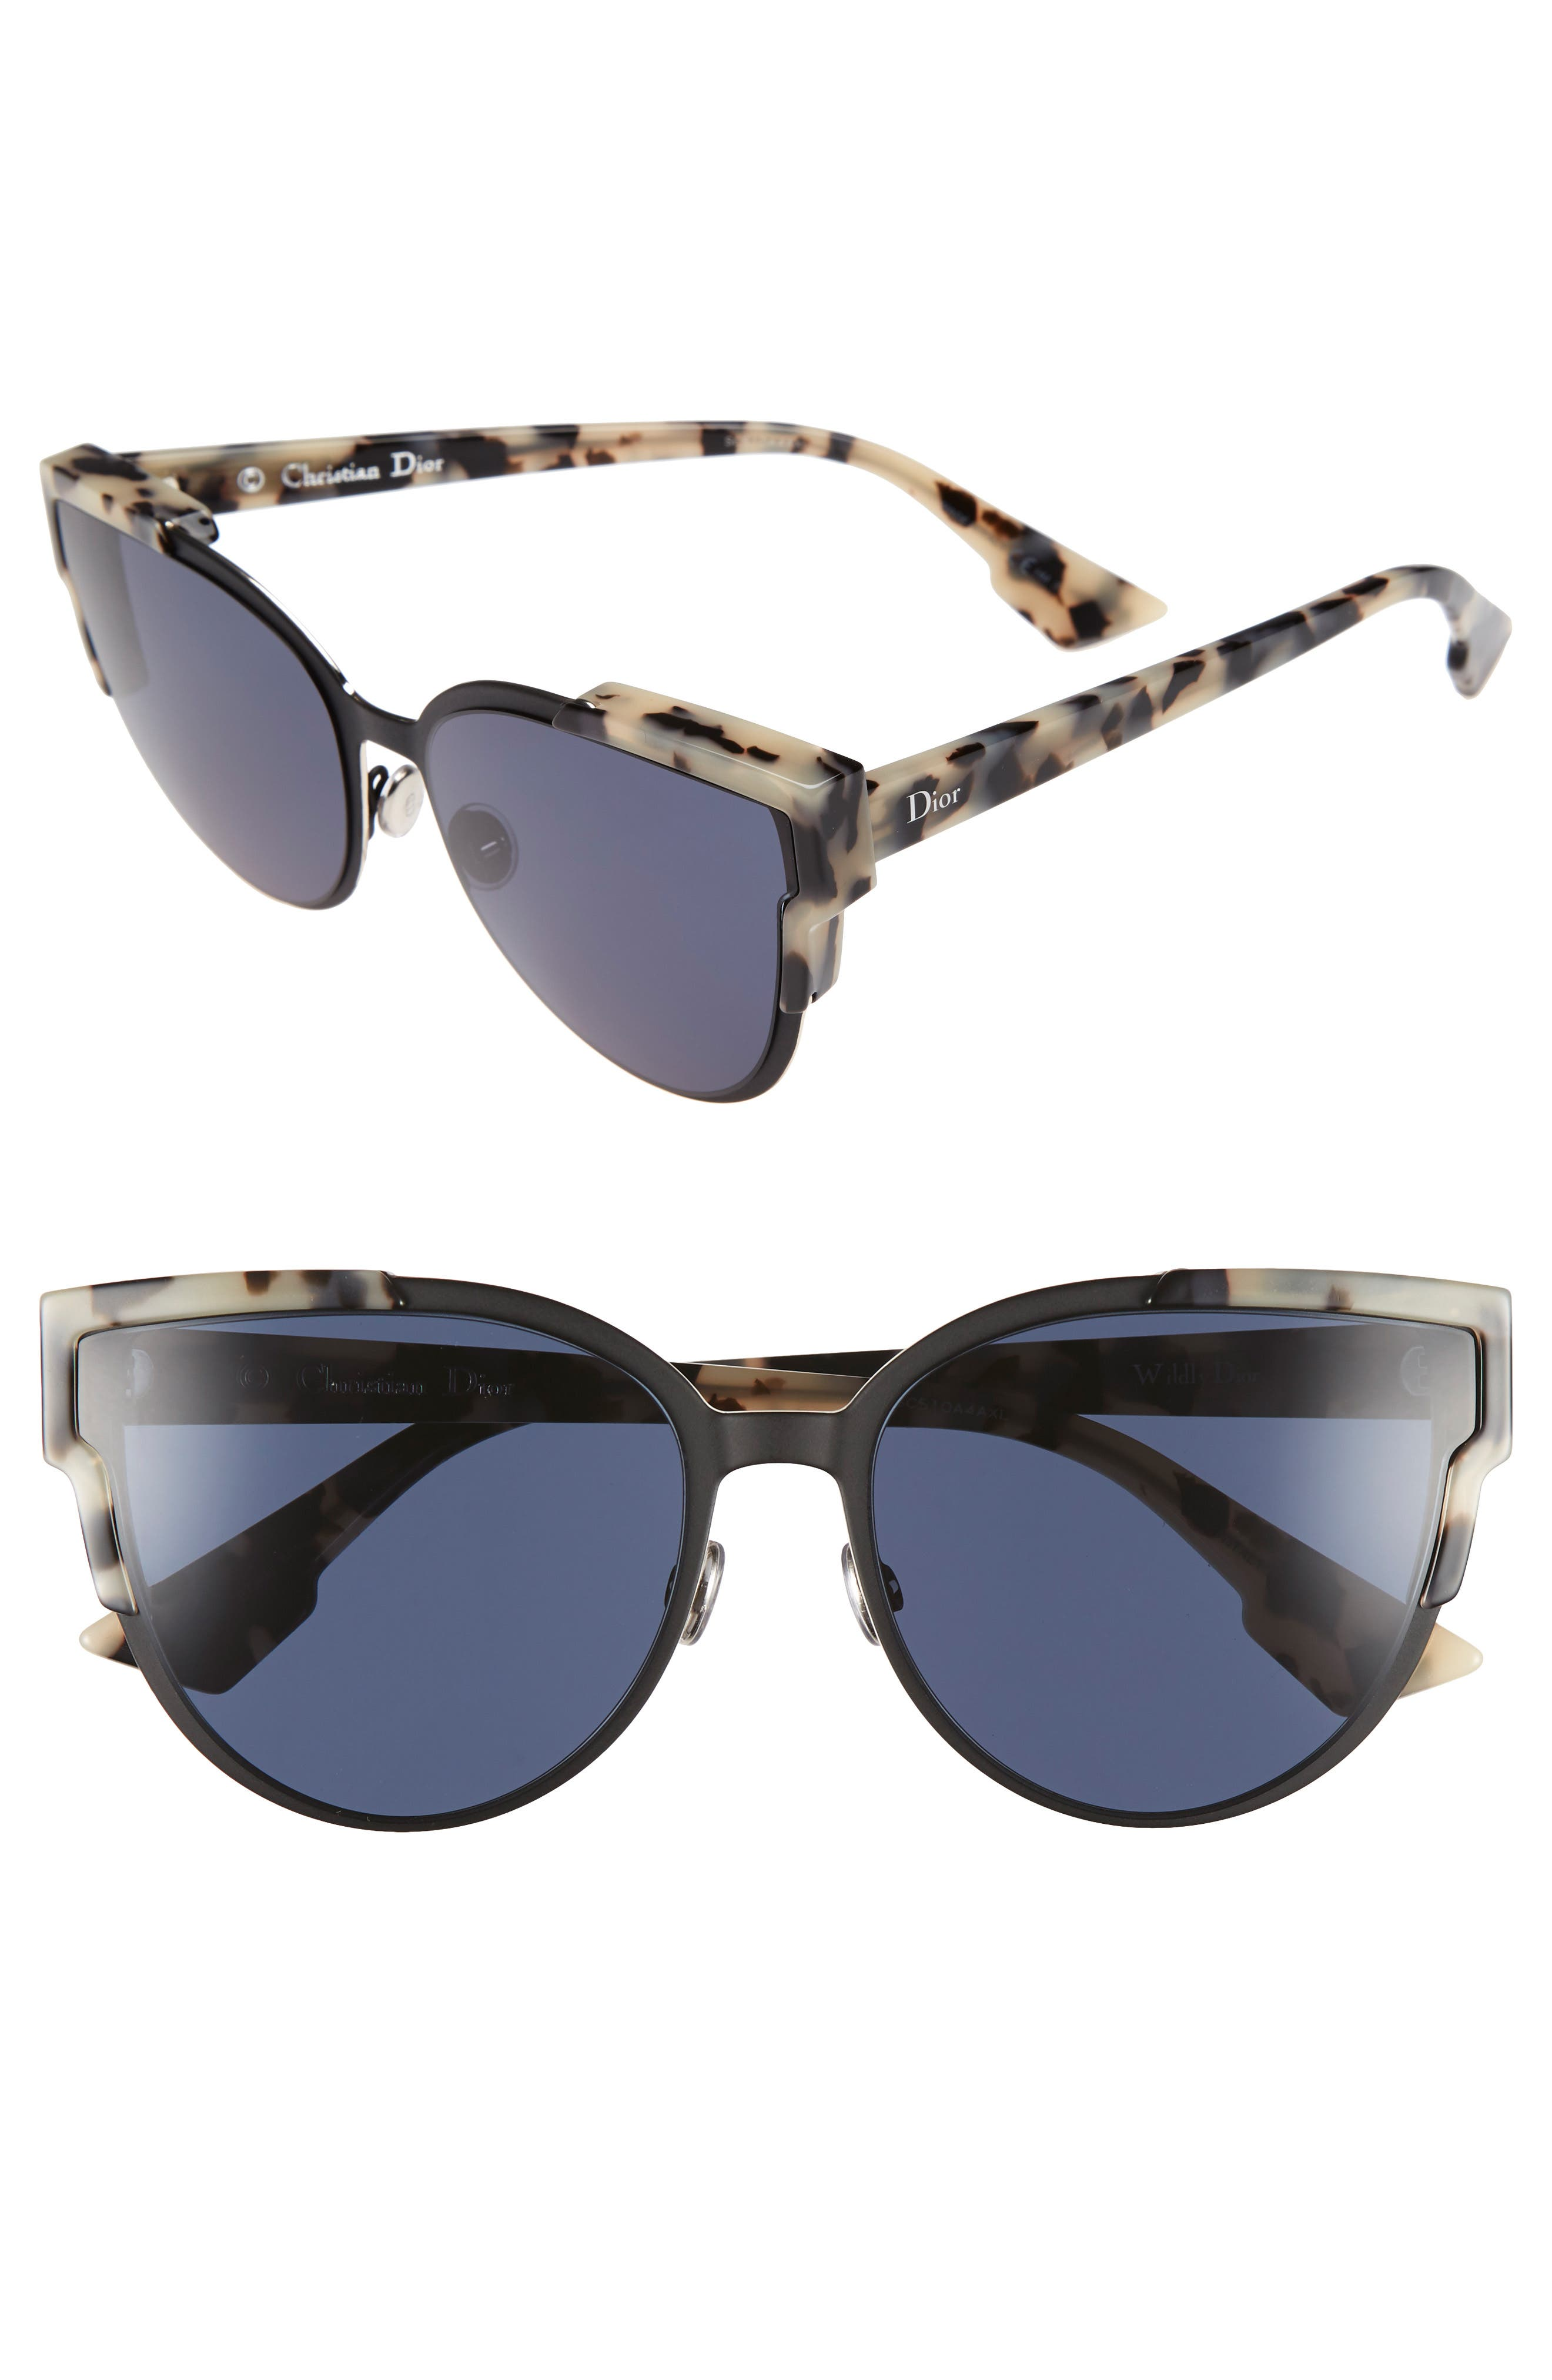 Wildly Dior 60mm Cat Eye Sunglasses,                             Alternate thumbnail 2, color,                             200